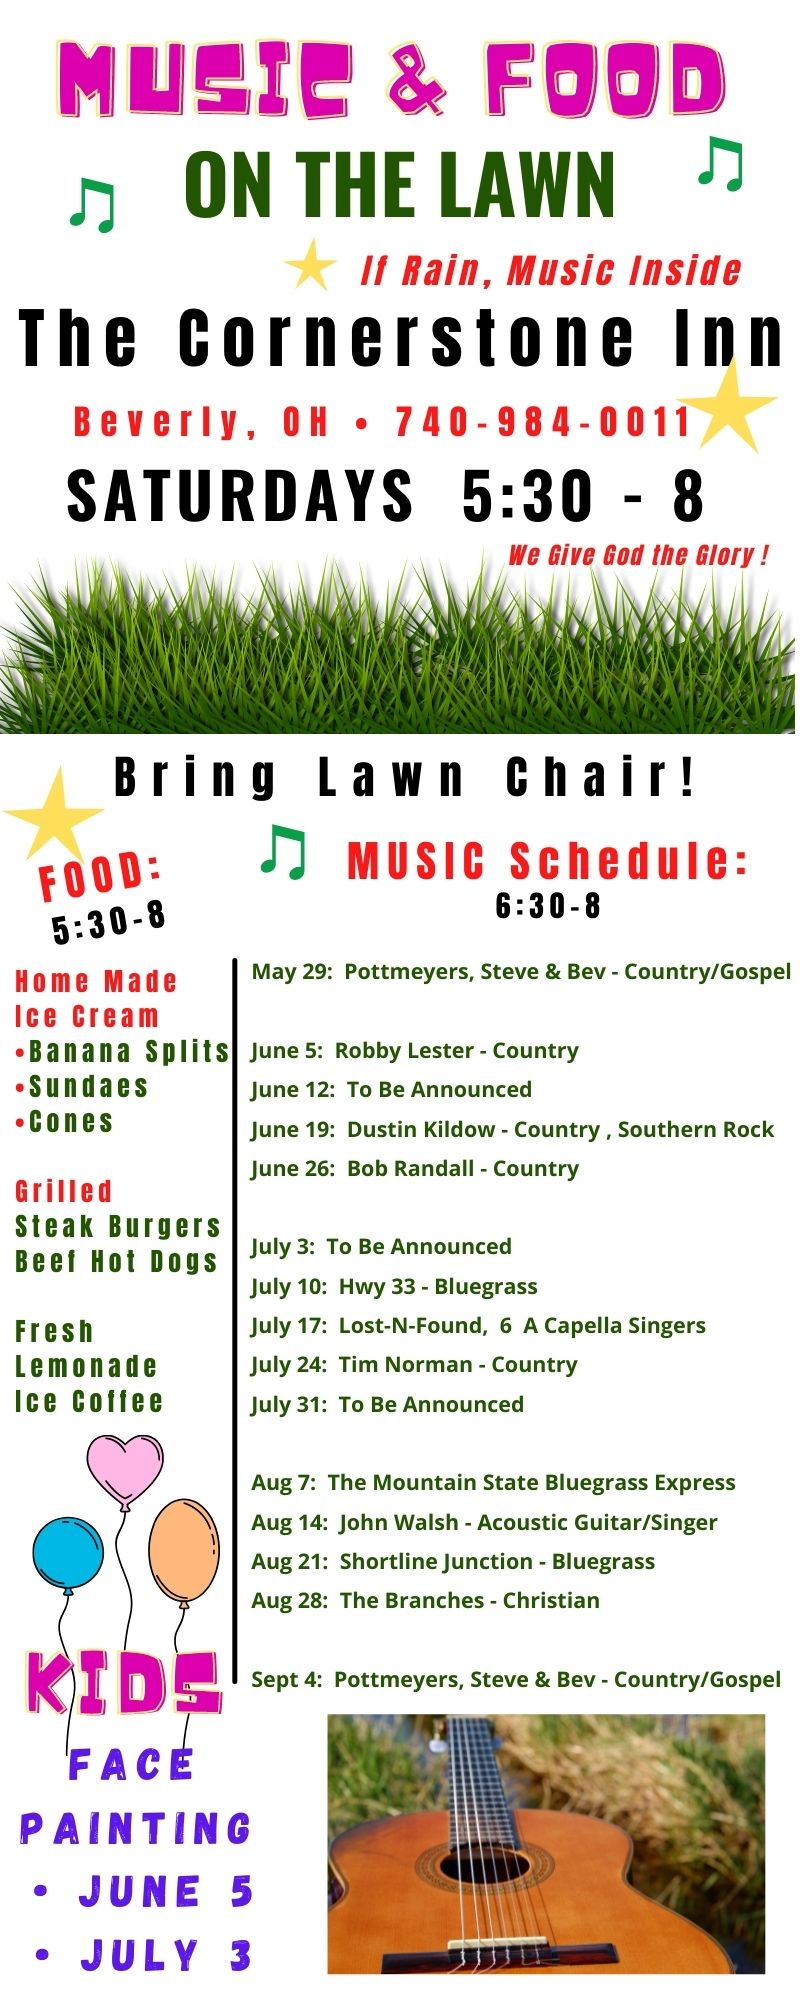 Music and Food on the Lawn-Cornerstone Inn, Beverly